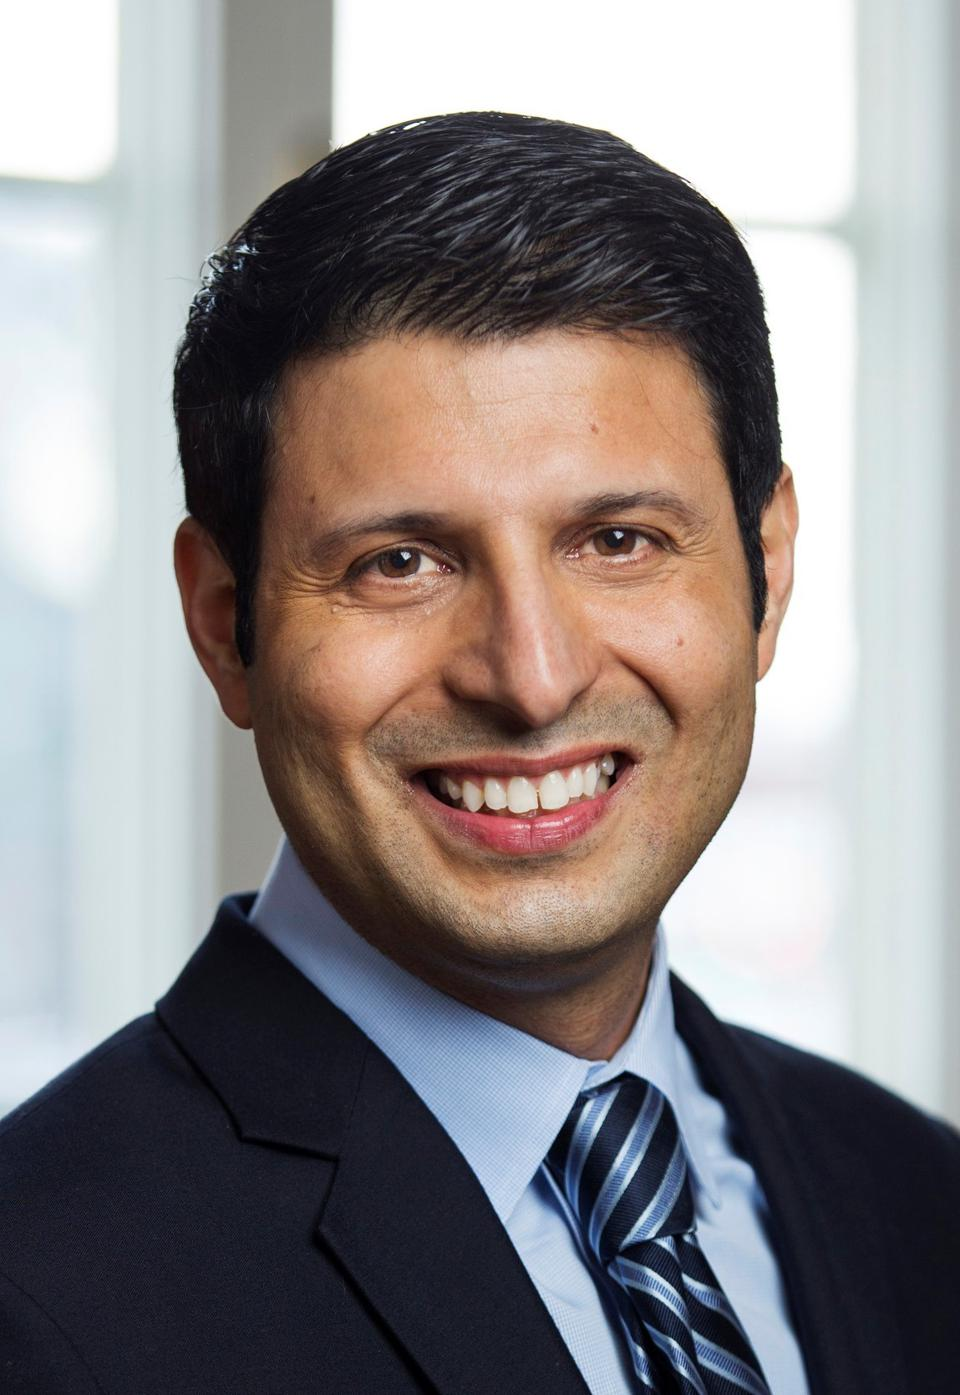 A headshot of Sodexo North America Chair and Homecare Worldwide CEO Sarosh Mistry